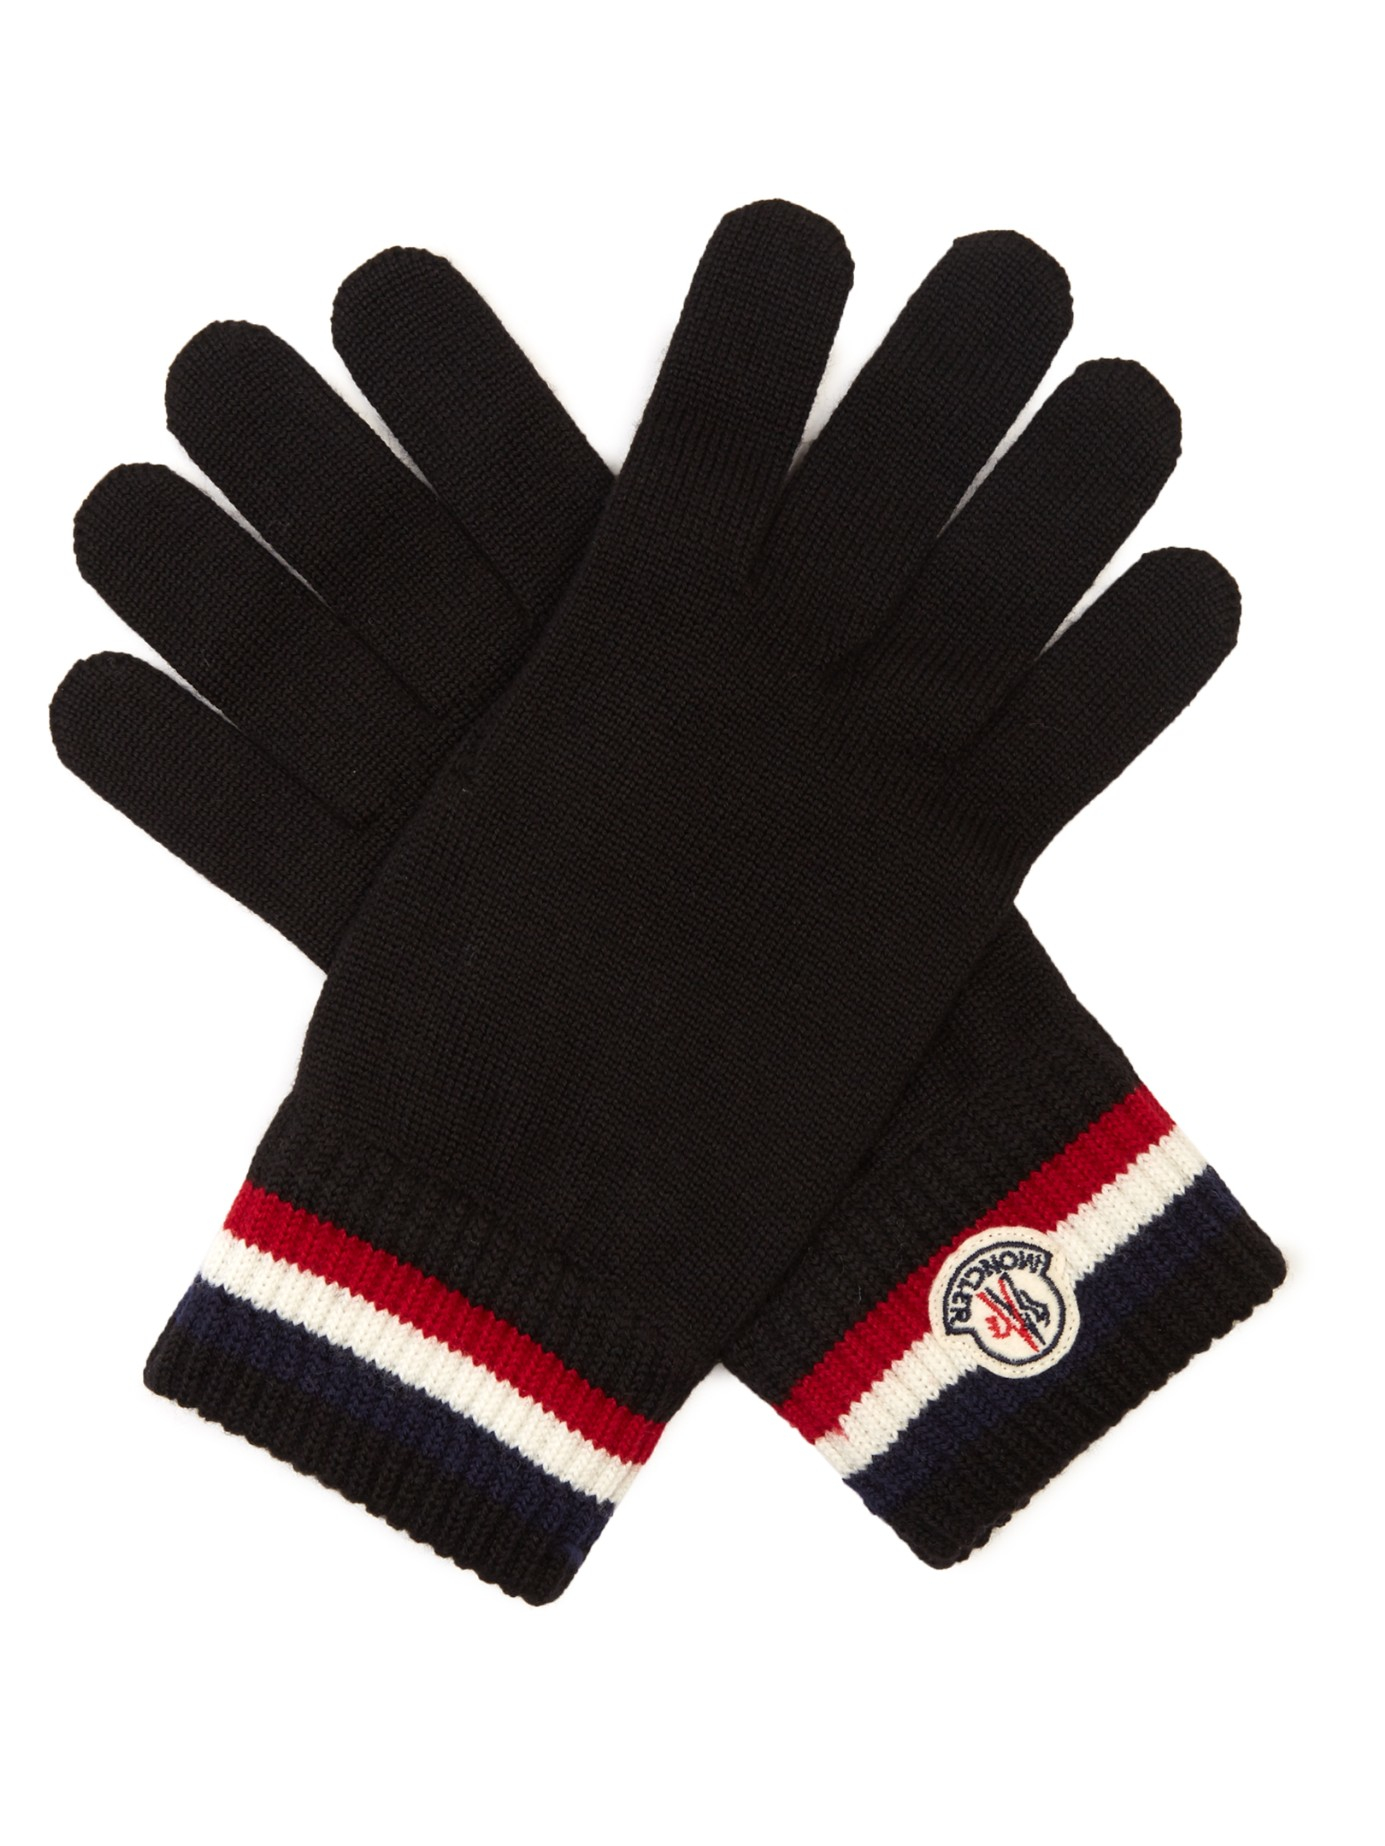 6c55ae4108f7 Lyst - Moncler Virgin-Wool Knit Gloves in Black for Men